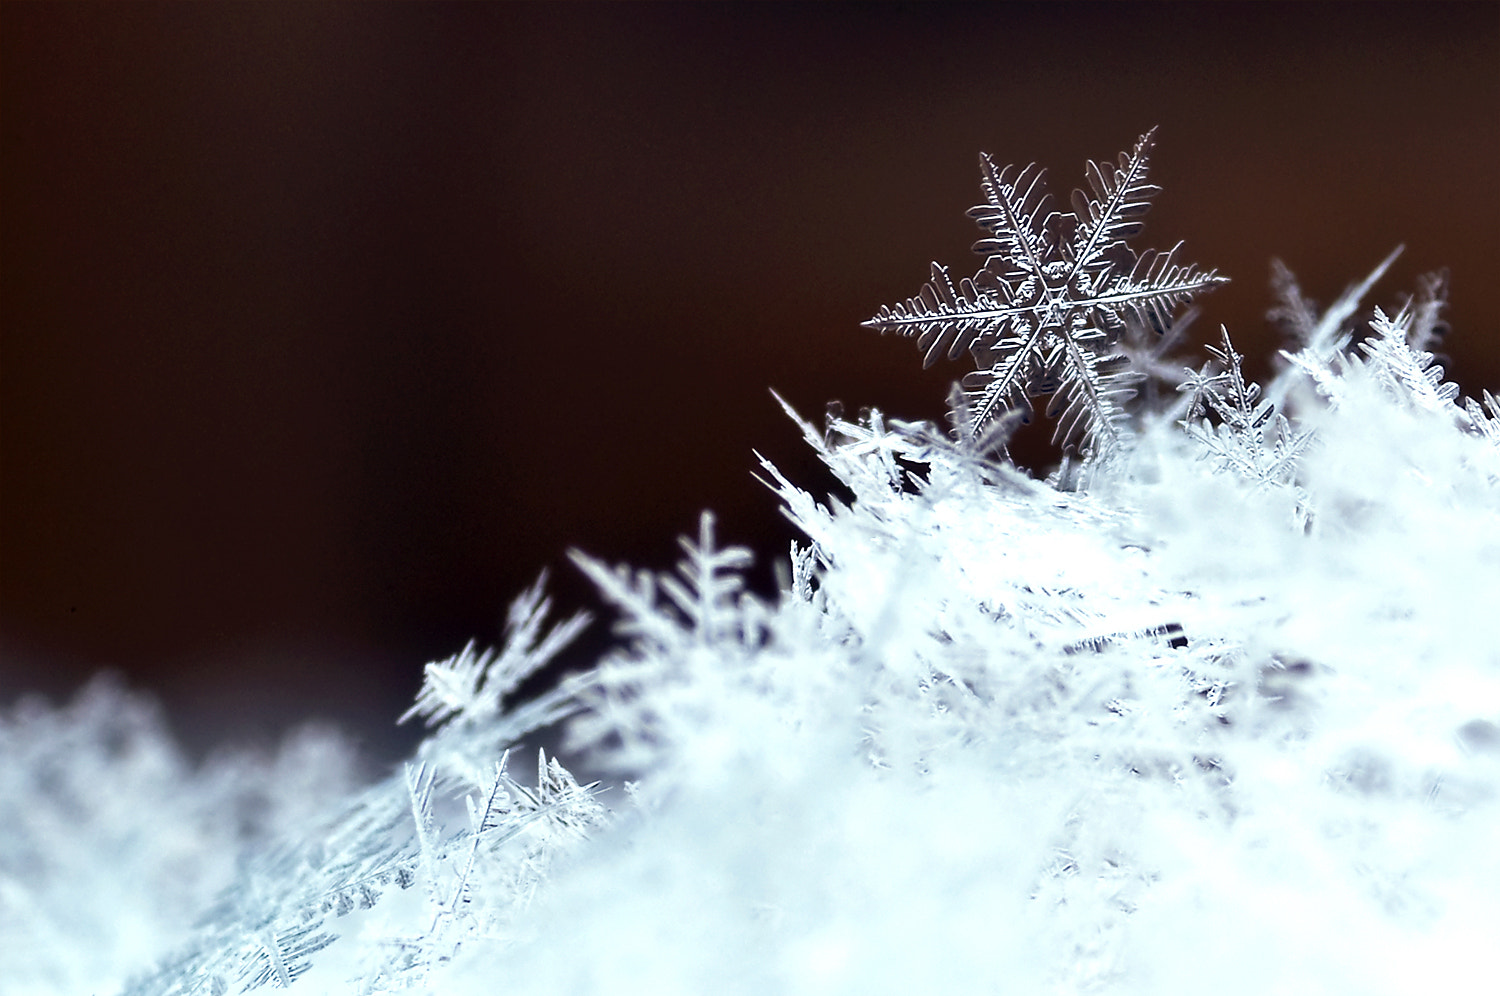 Photograph Flakes by Chris Ruijter on 500px